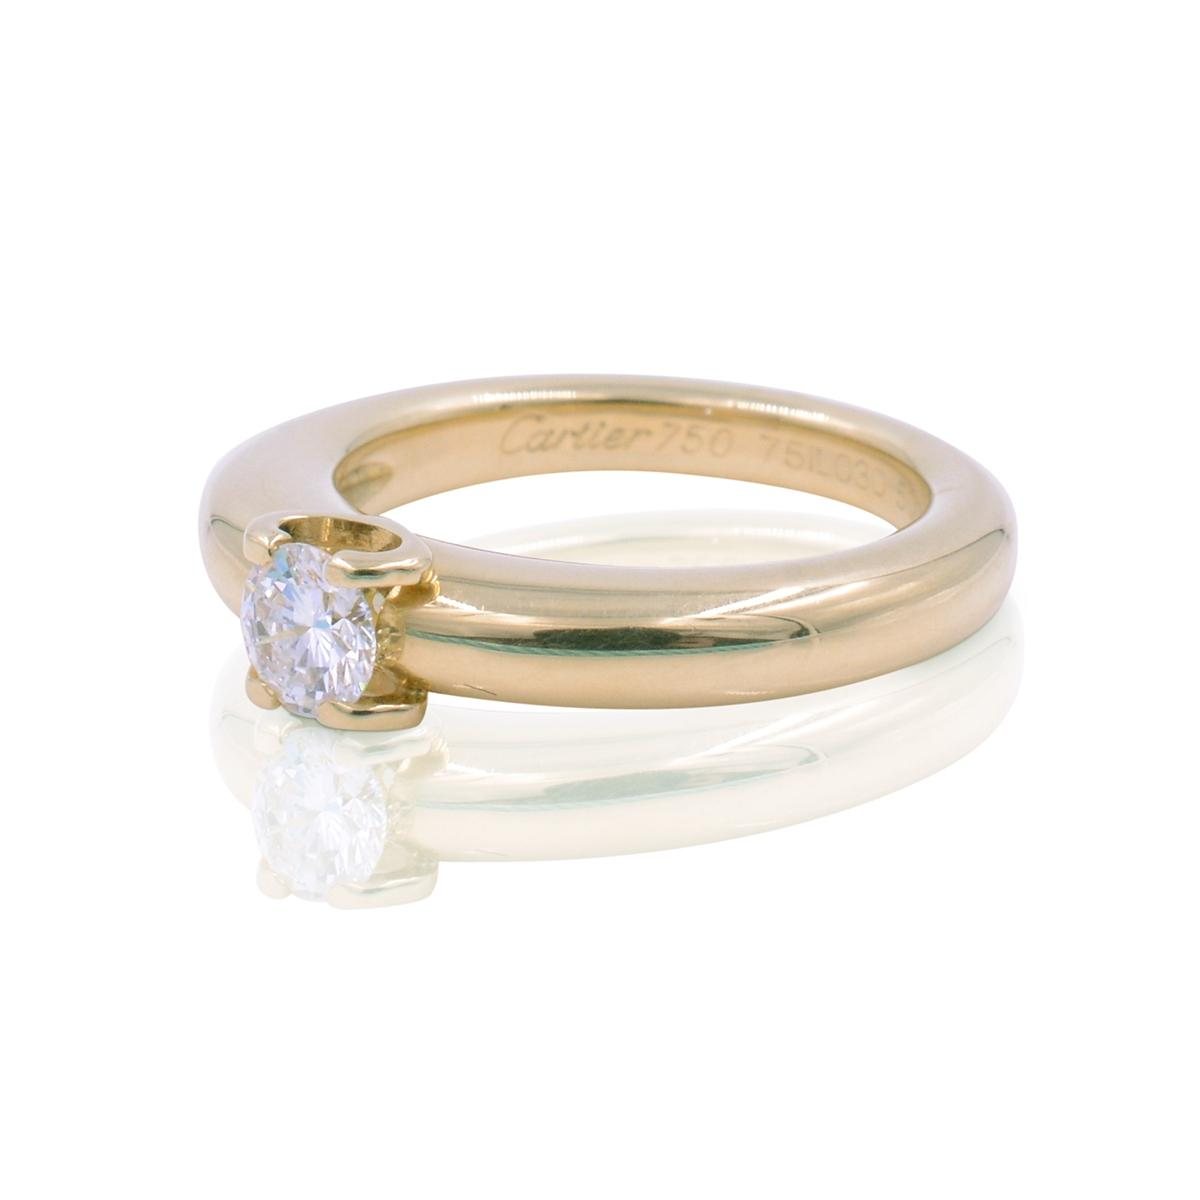 Cartier Engagement Rings   Up to 90  off at Tradesy Cartier Round Cut H Color Vs2 Clarity 0 30 Ct 18k Yellow Gold Diamond  Solitaire  18951